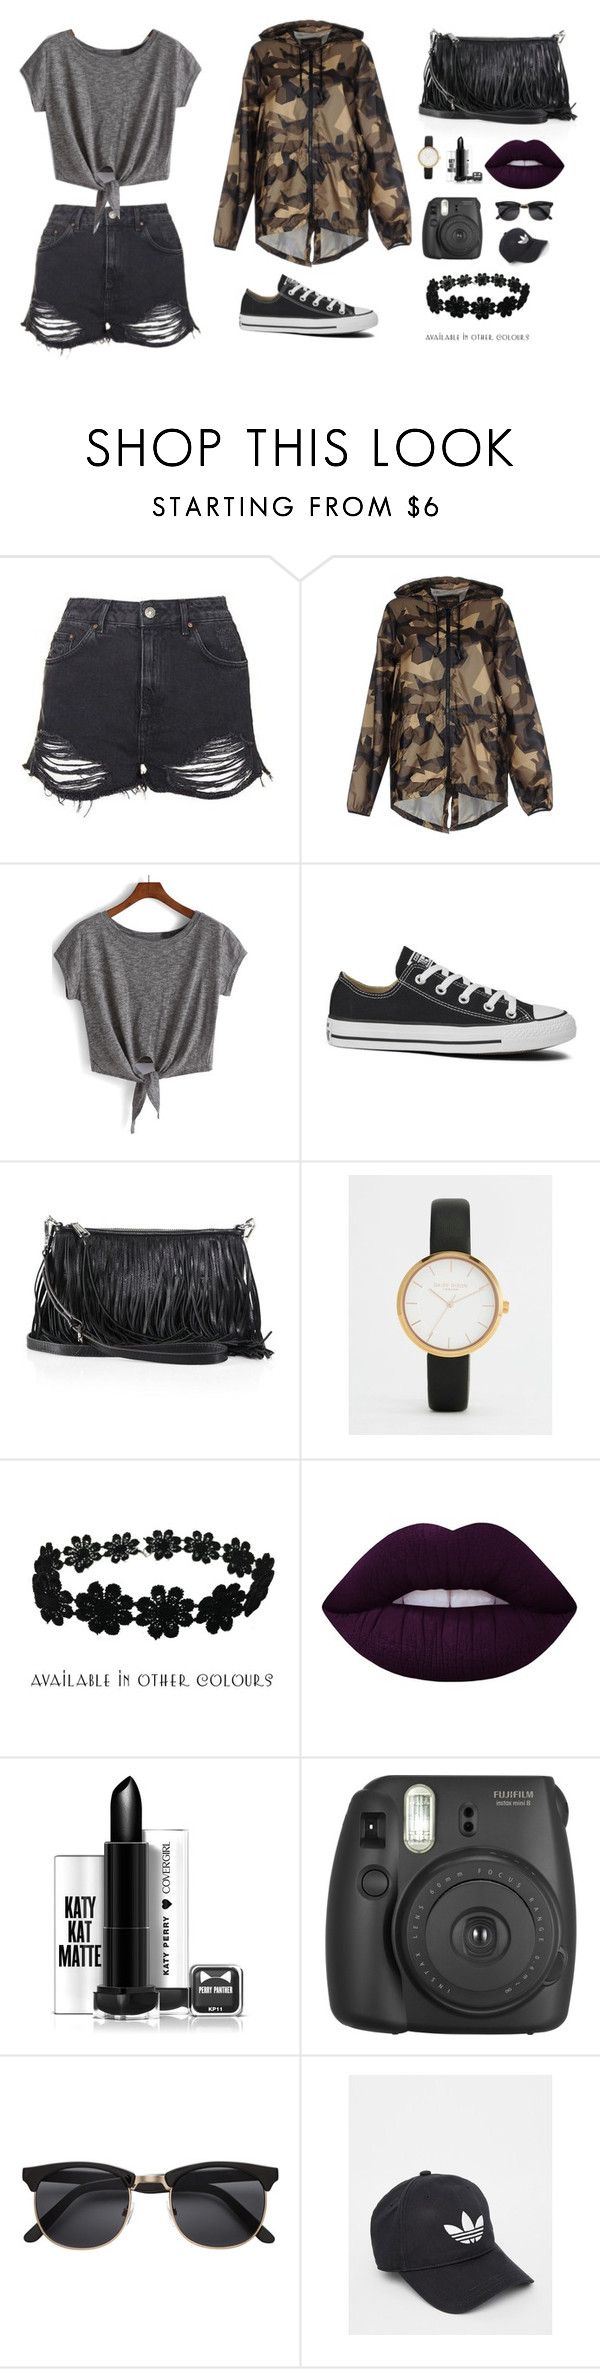 """""""Untitled #4"""" by cristine-nguyenmy ❤ liked on Polyvore featuring Topshop, Fifteen And Half, Converse, Rebecca Minkoff, Daisy Dixon, Zara Taylor, Lime Crime and adidas"""